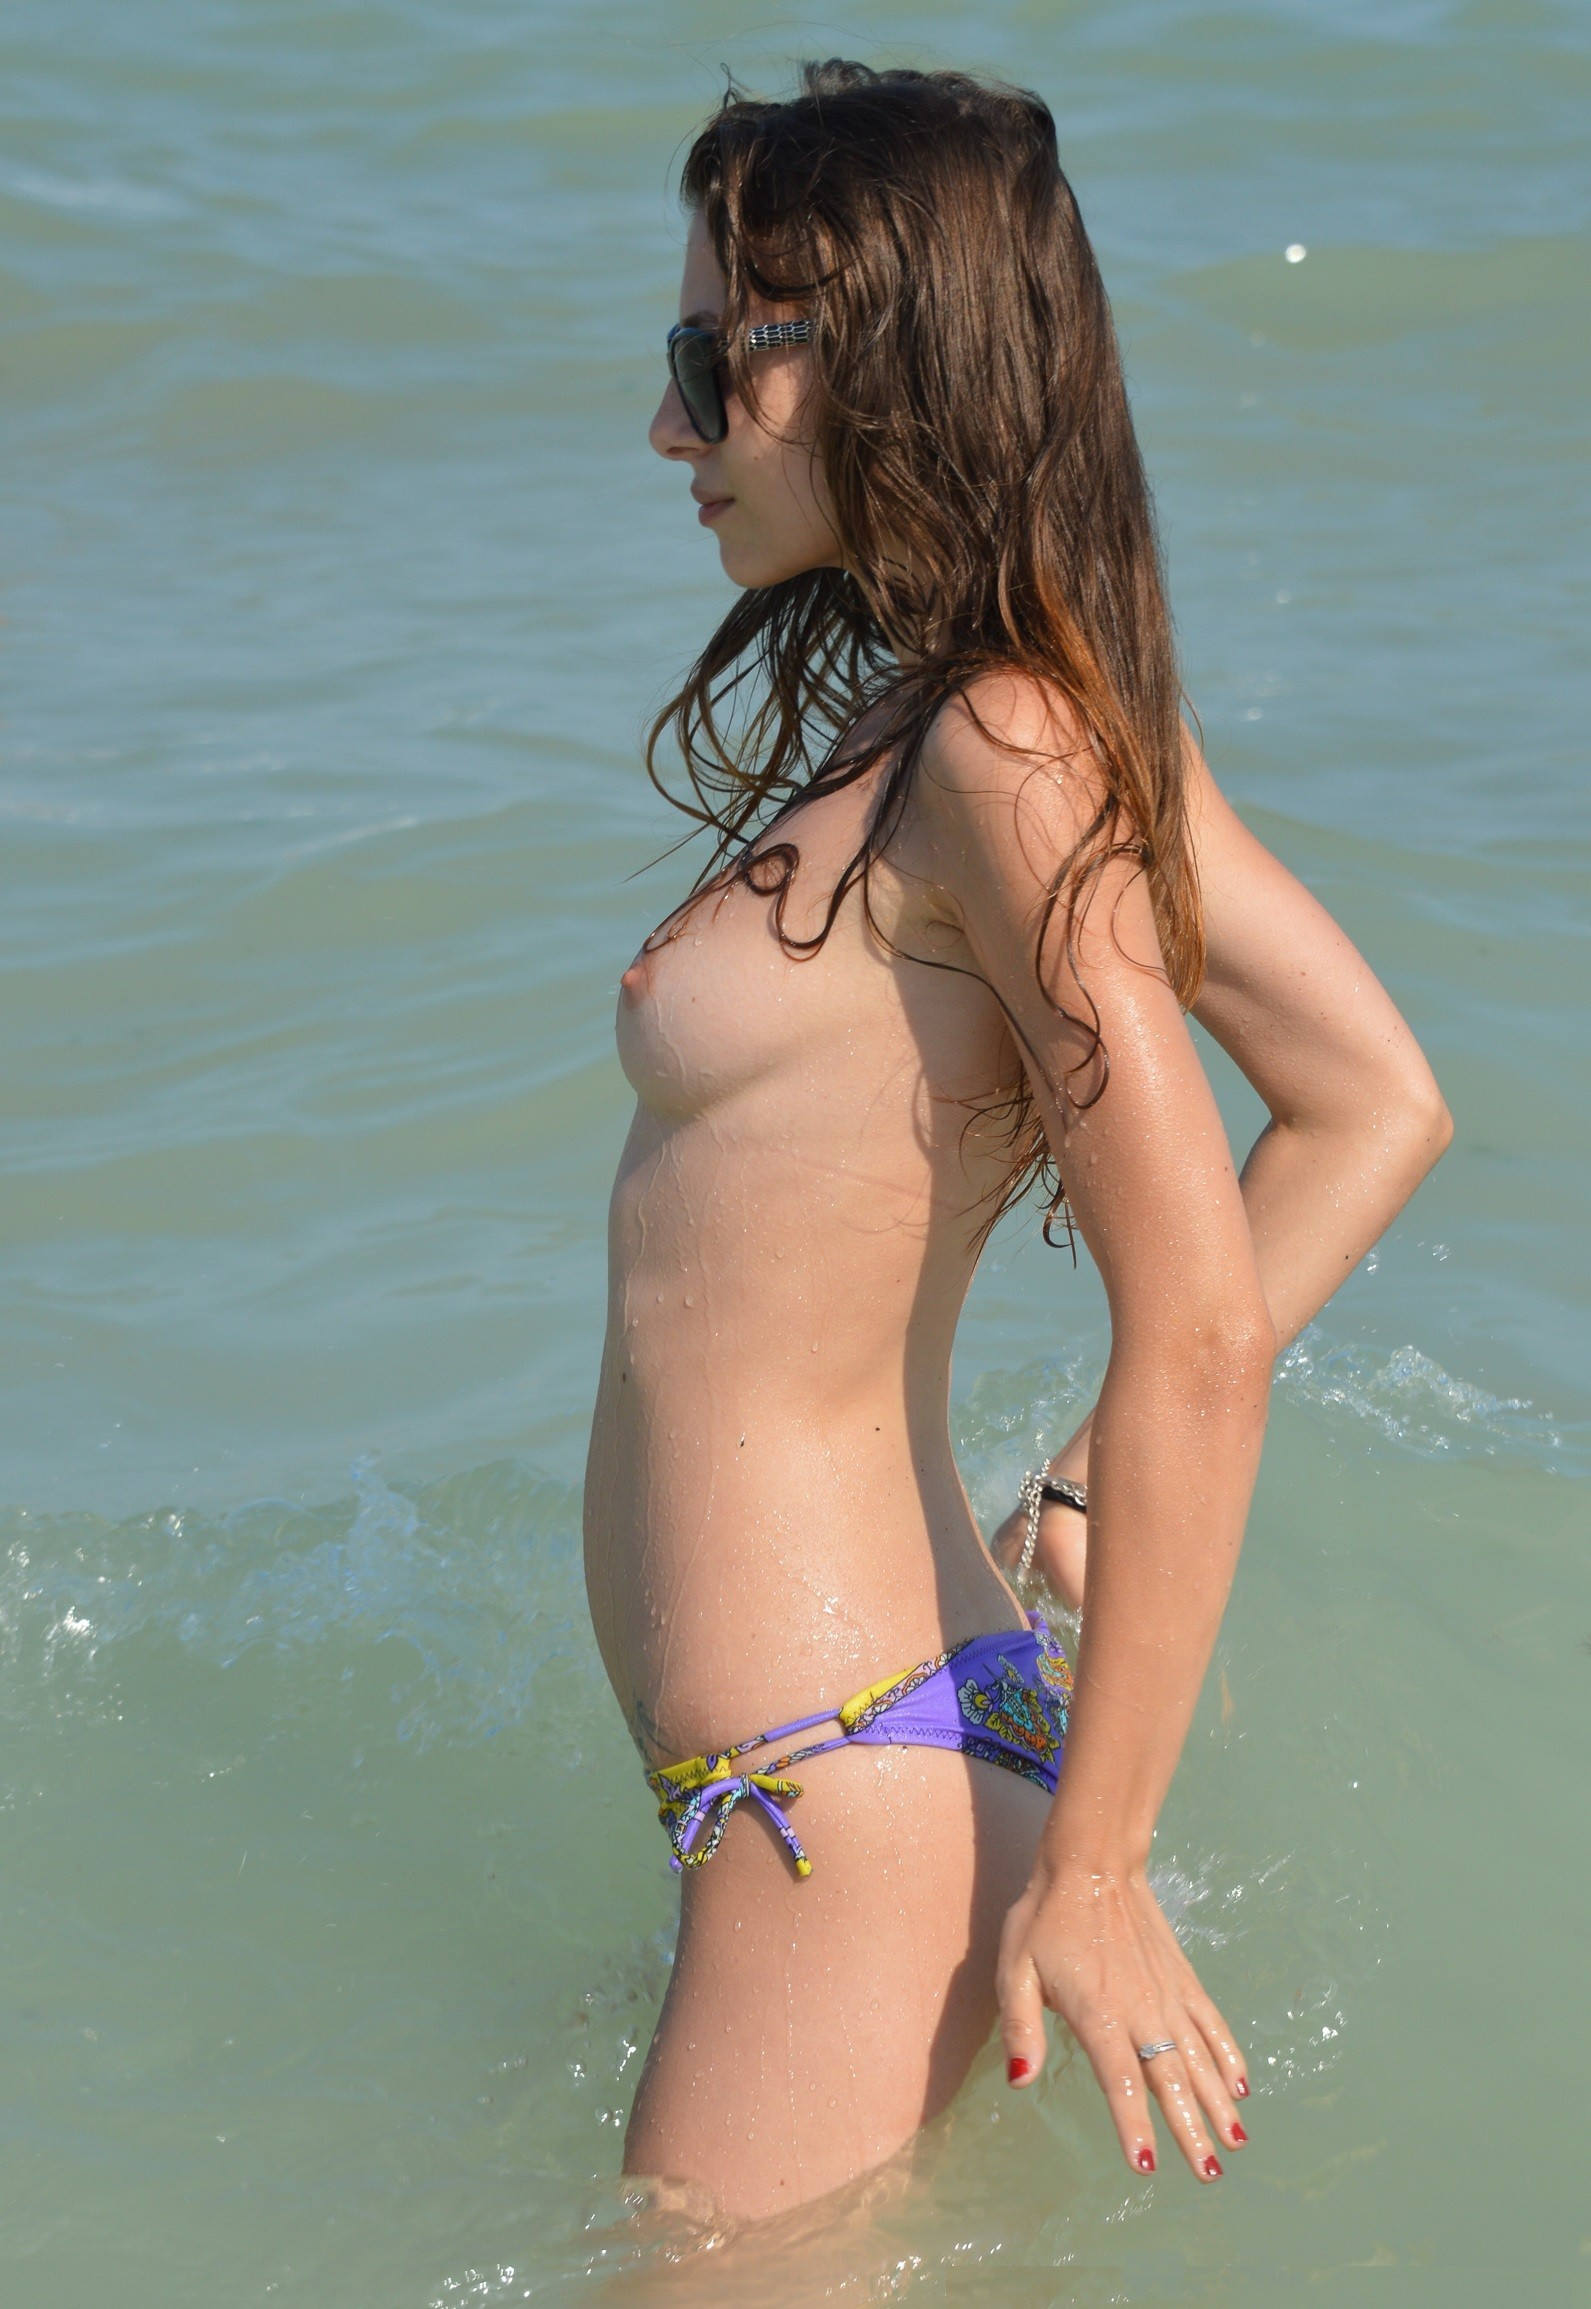 nudists-girls-boobs-beach-topless-mix-vol7-74